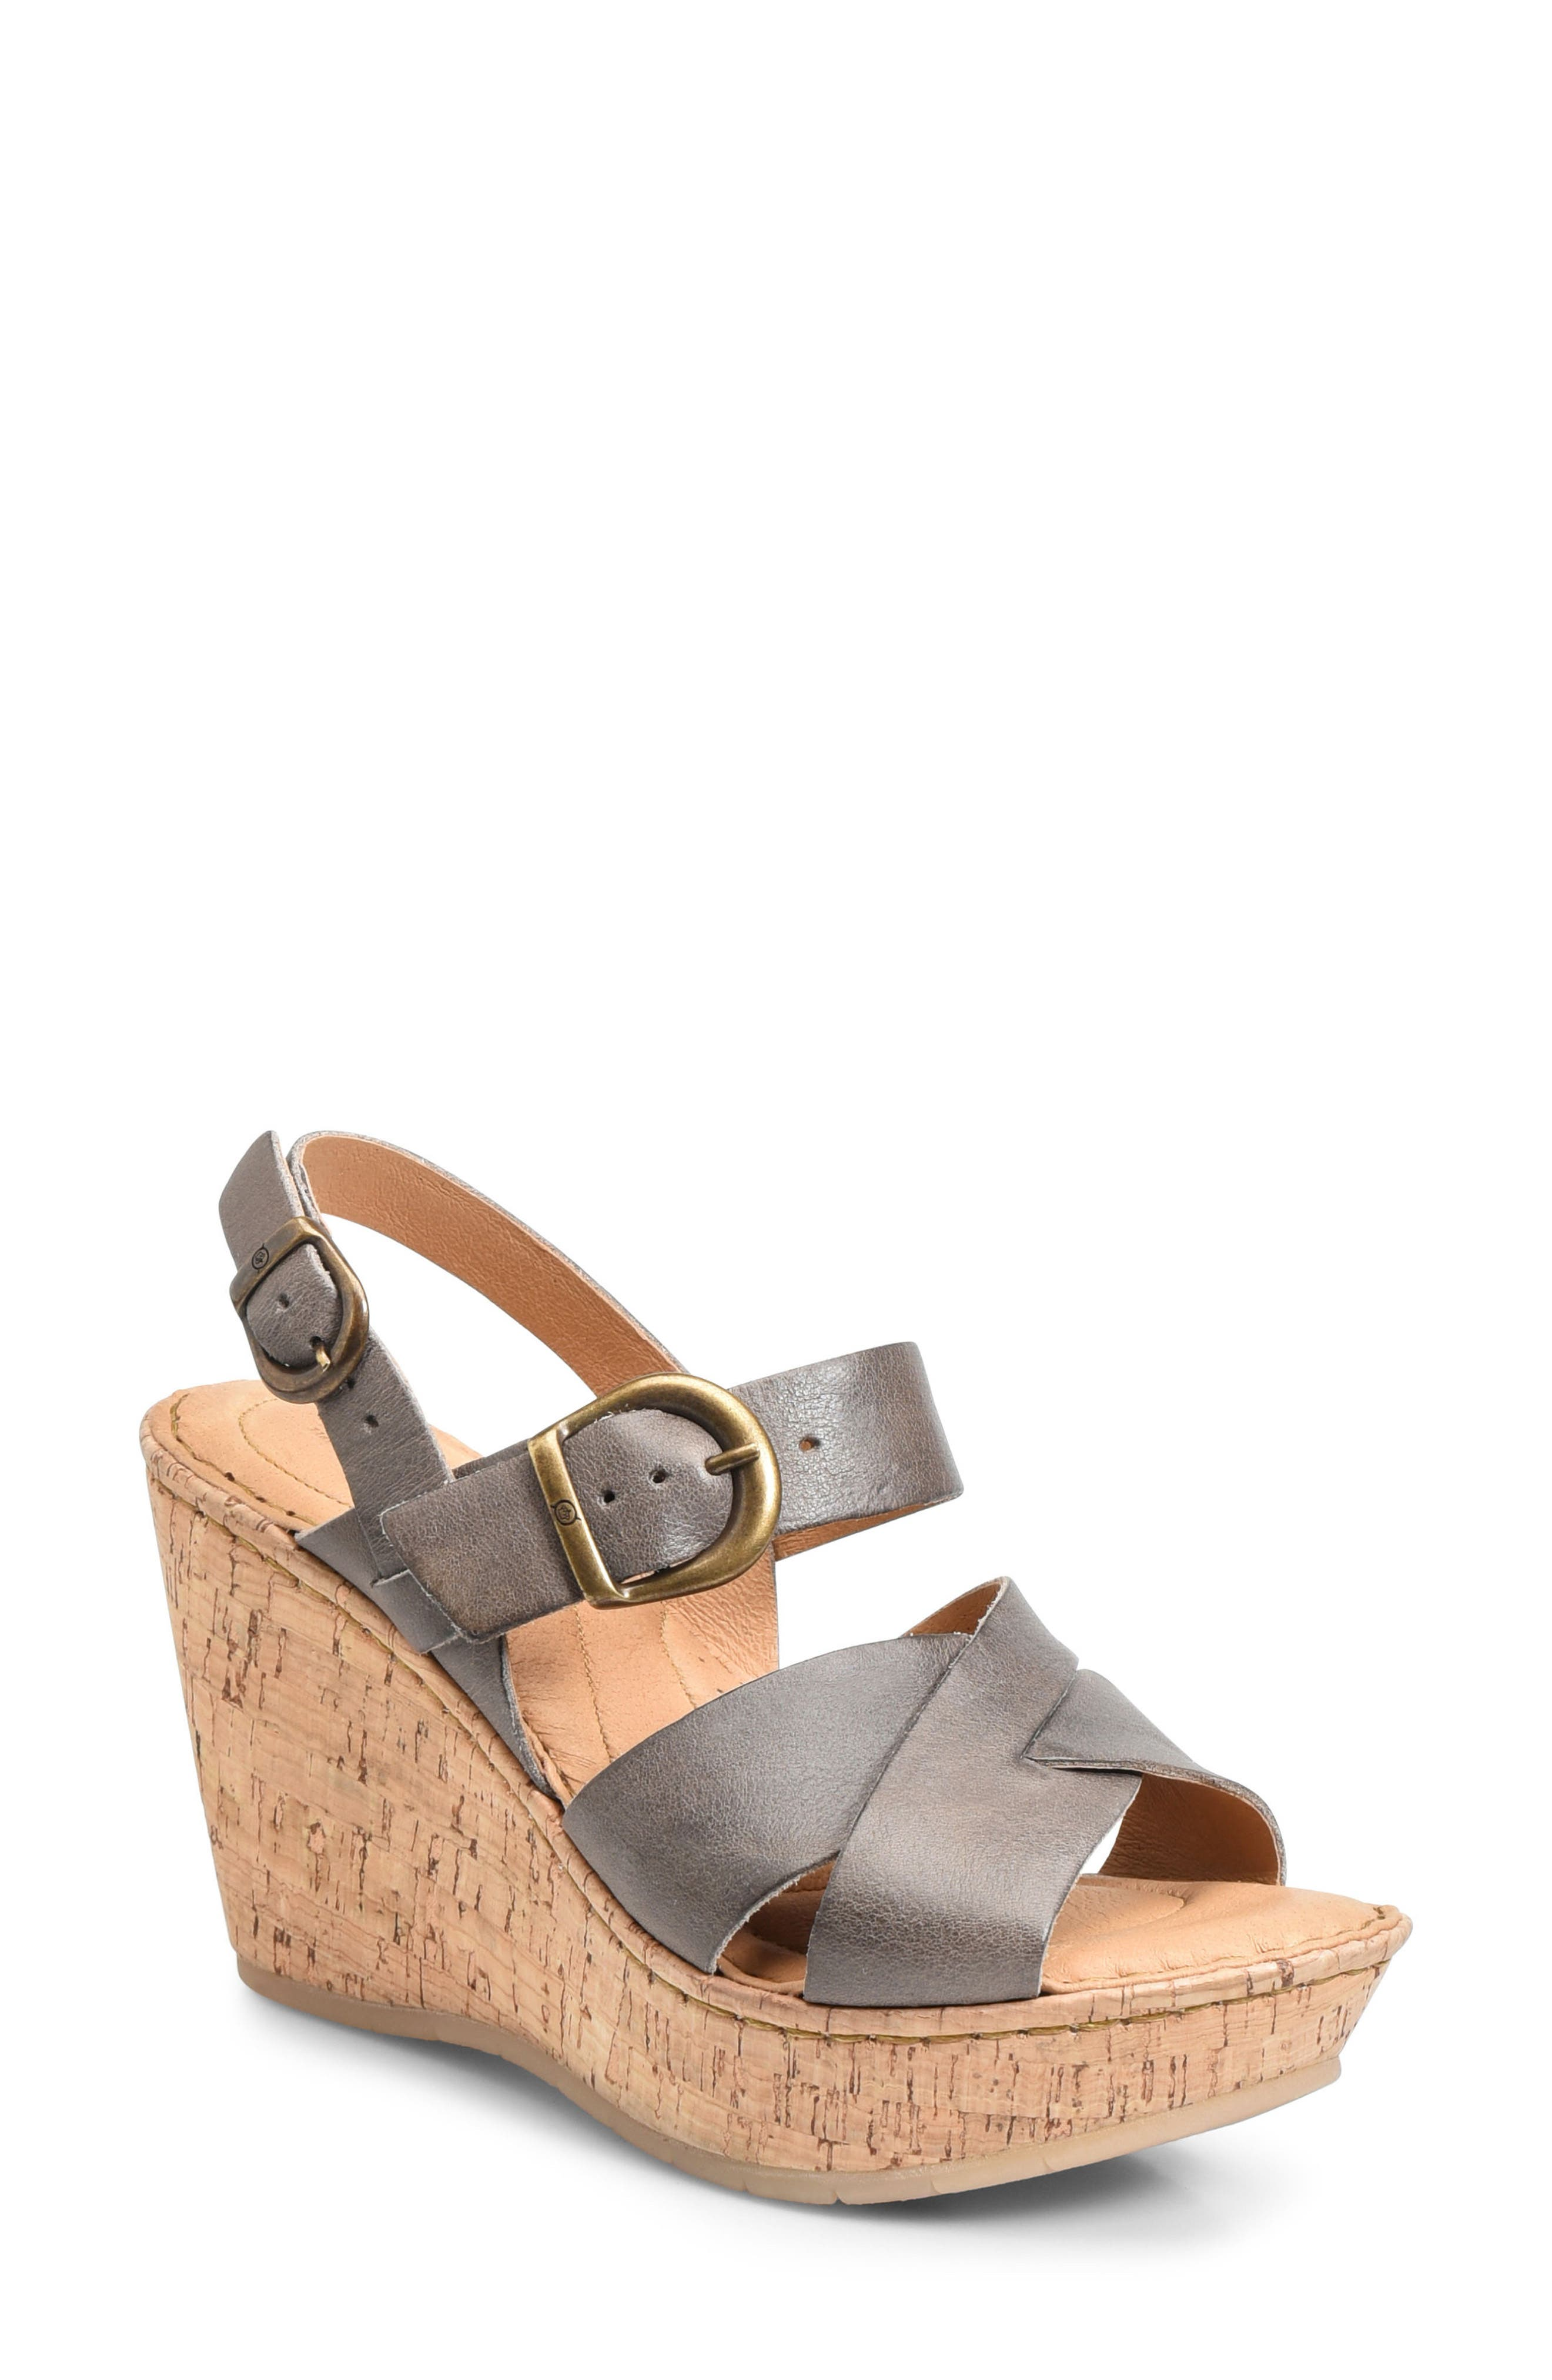 Emmy Platform Wedge,                         Main,                         color, 020